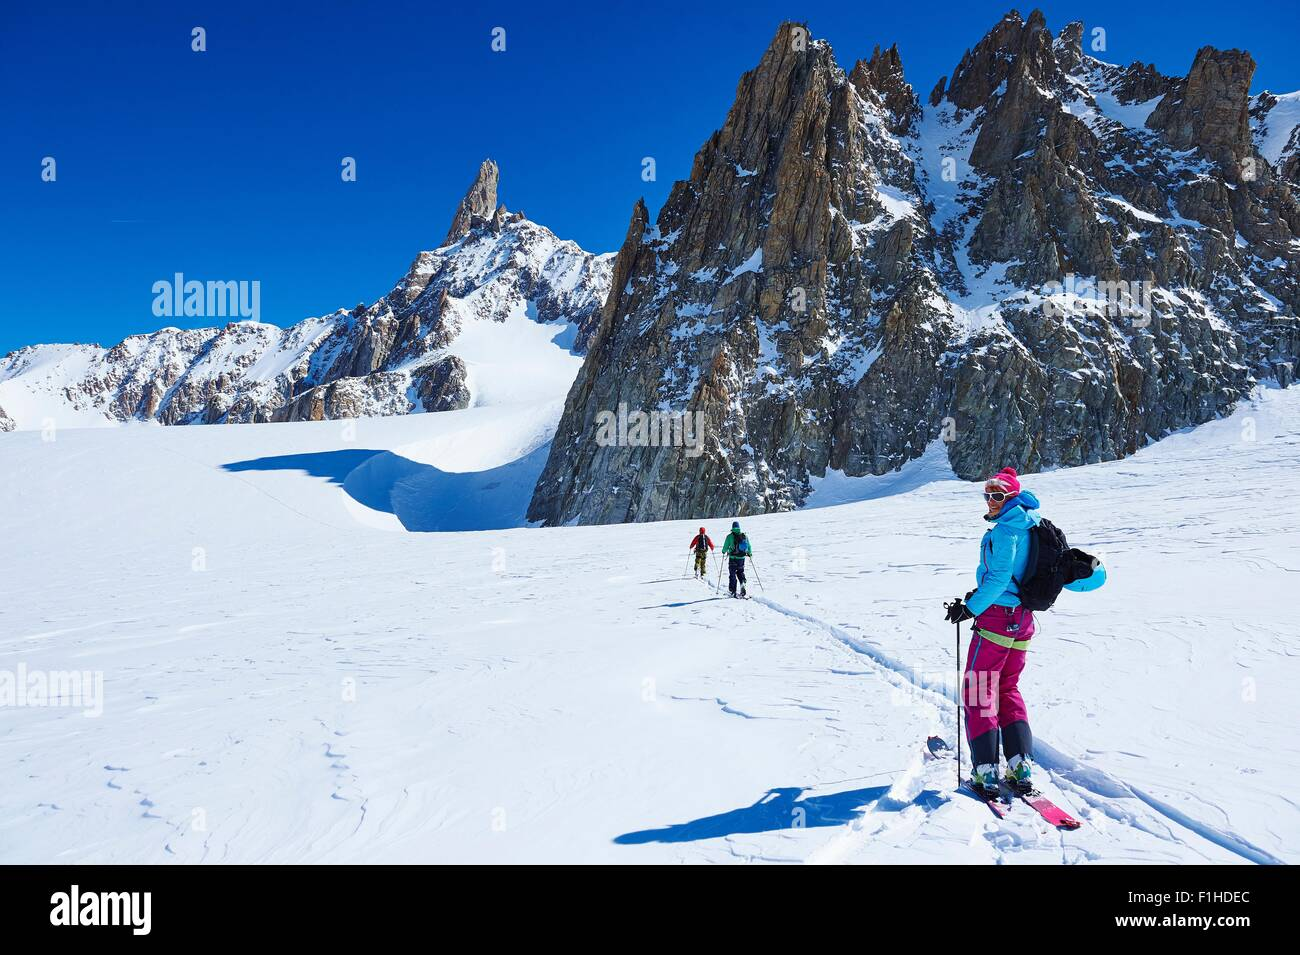 Three skiers on Mont Blanc massif, Graian Alps, France - Stock Image